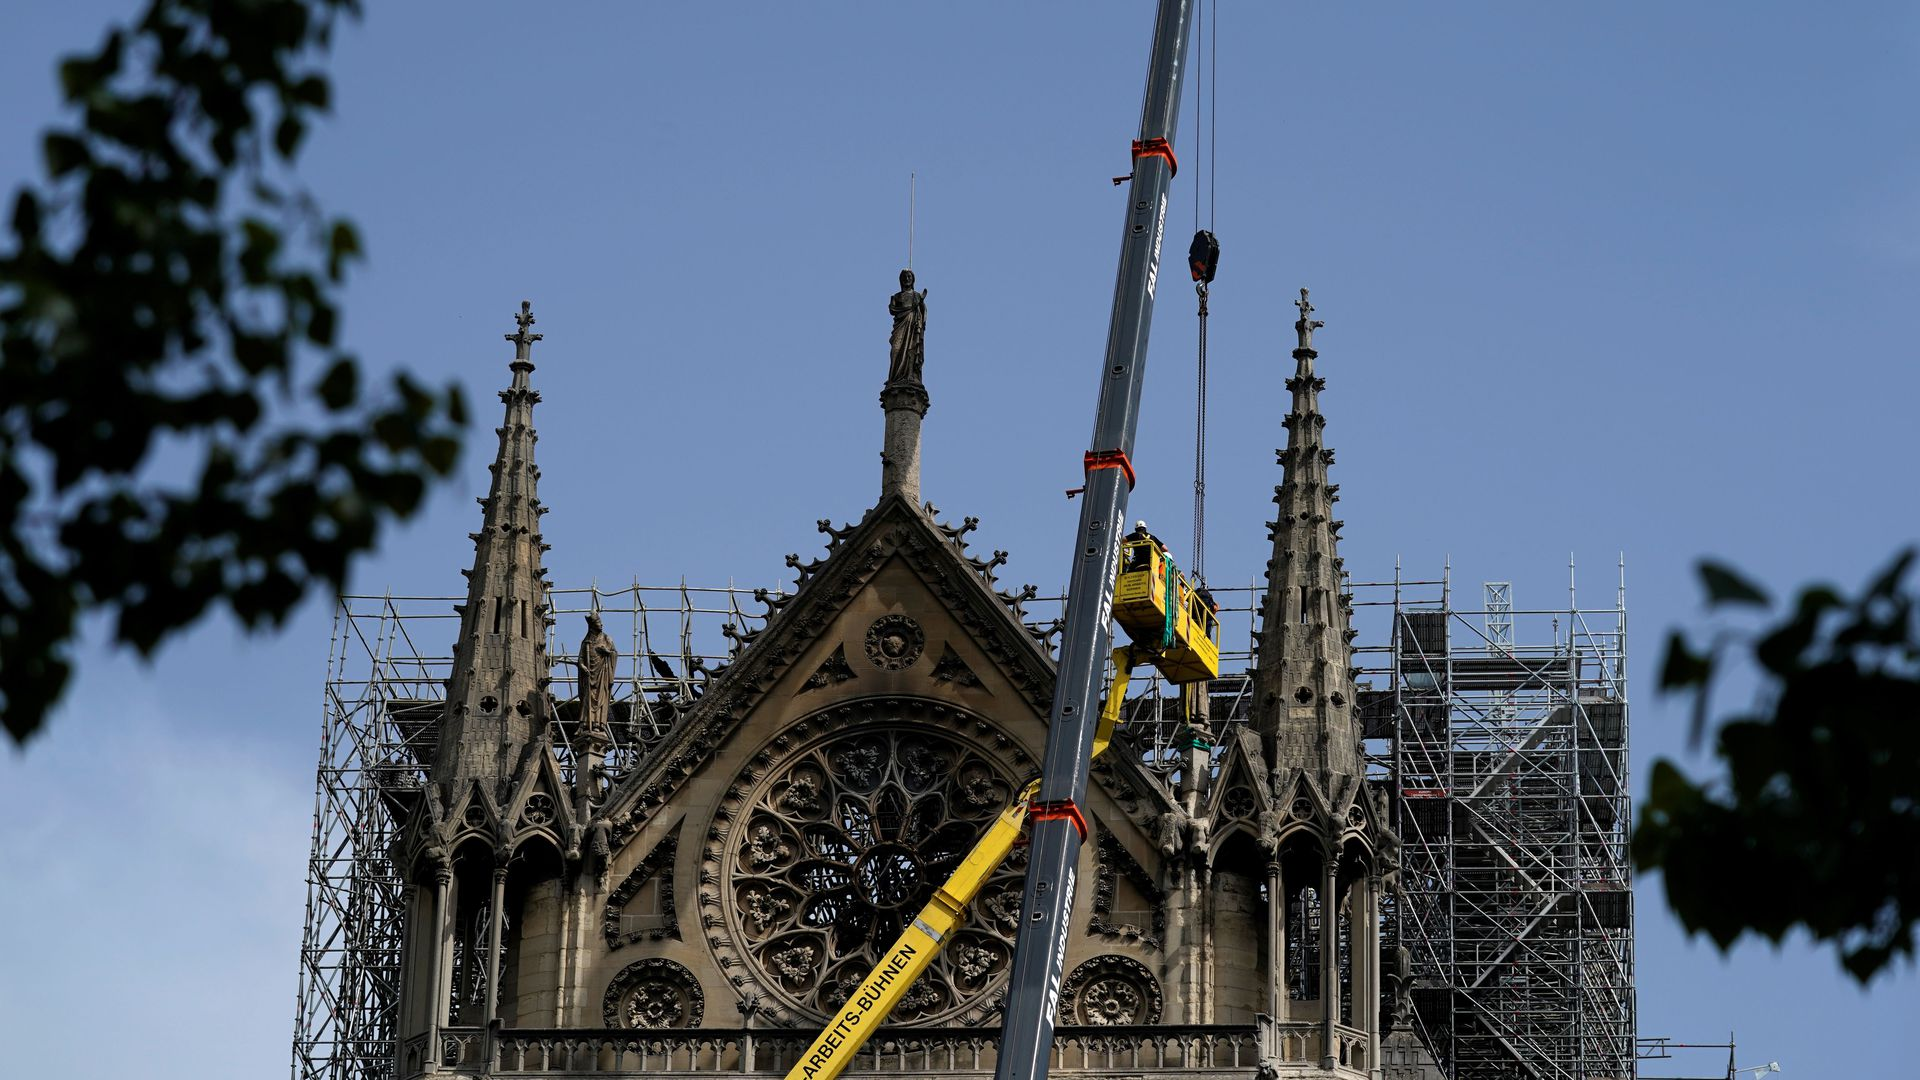 Construction on the Notre Dame cathedral.